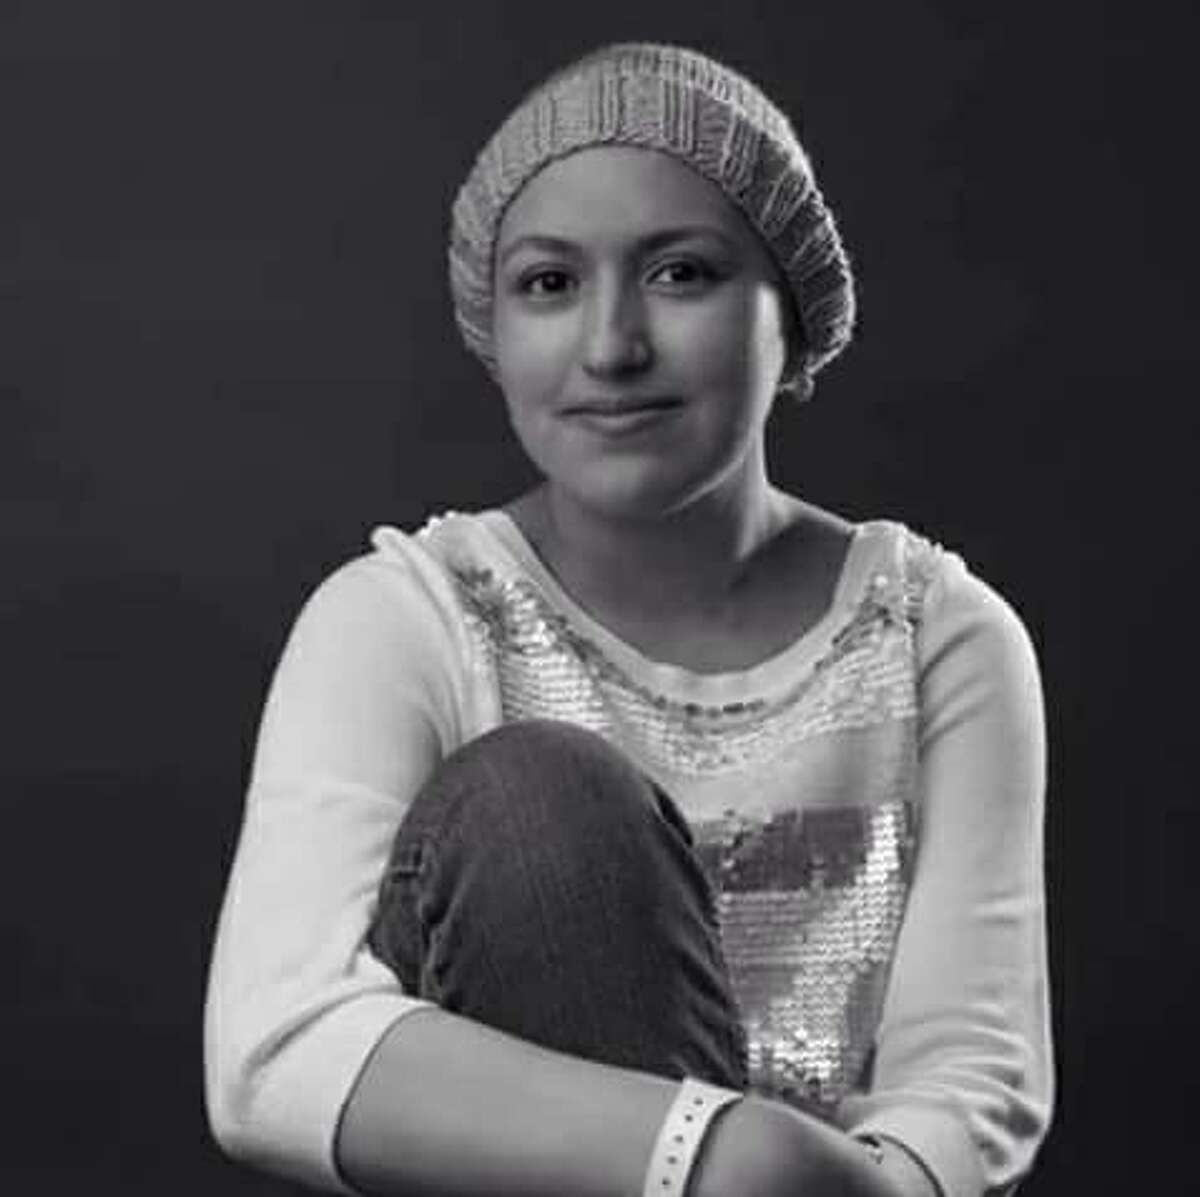 Elissa Longoria spent the majority of her high school years battling Ewings sarcoma before she died on May 10, 2016 at 17 years old.